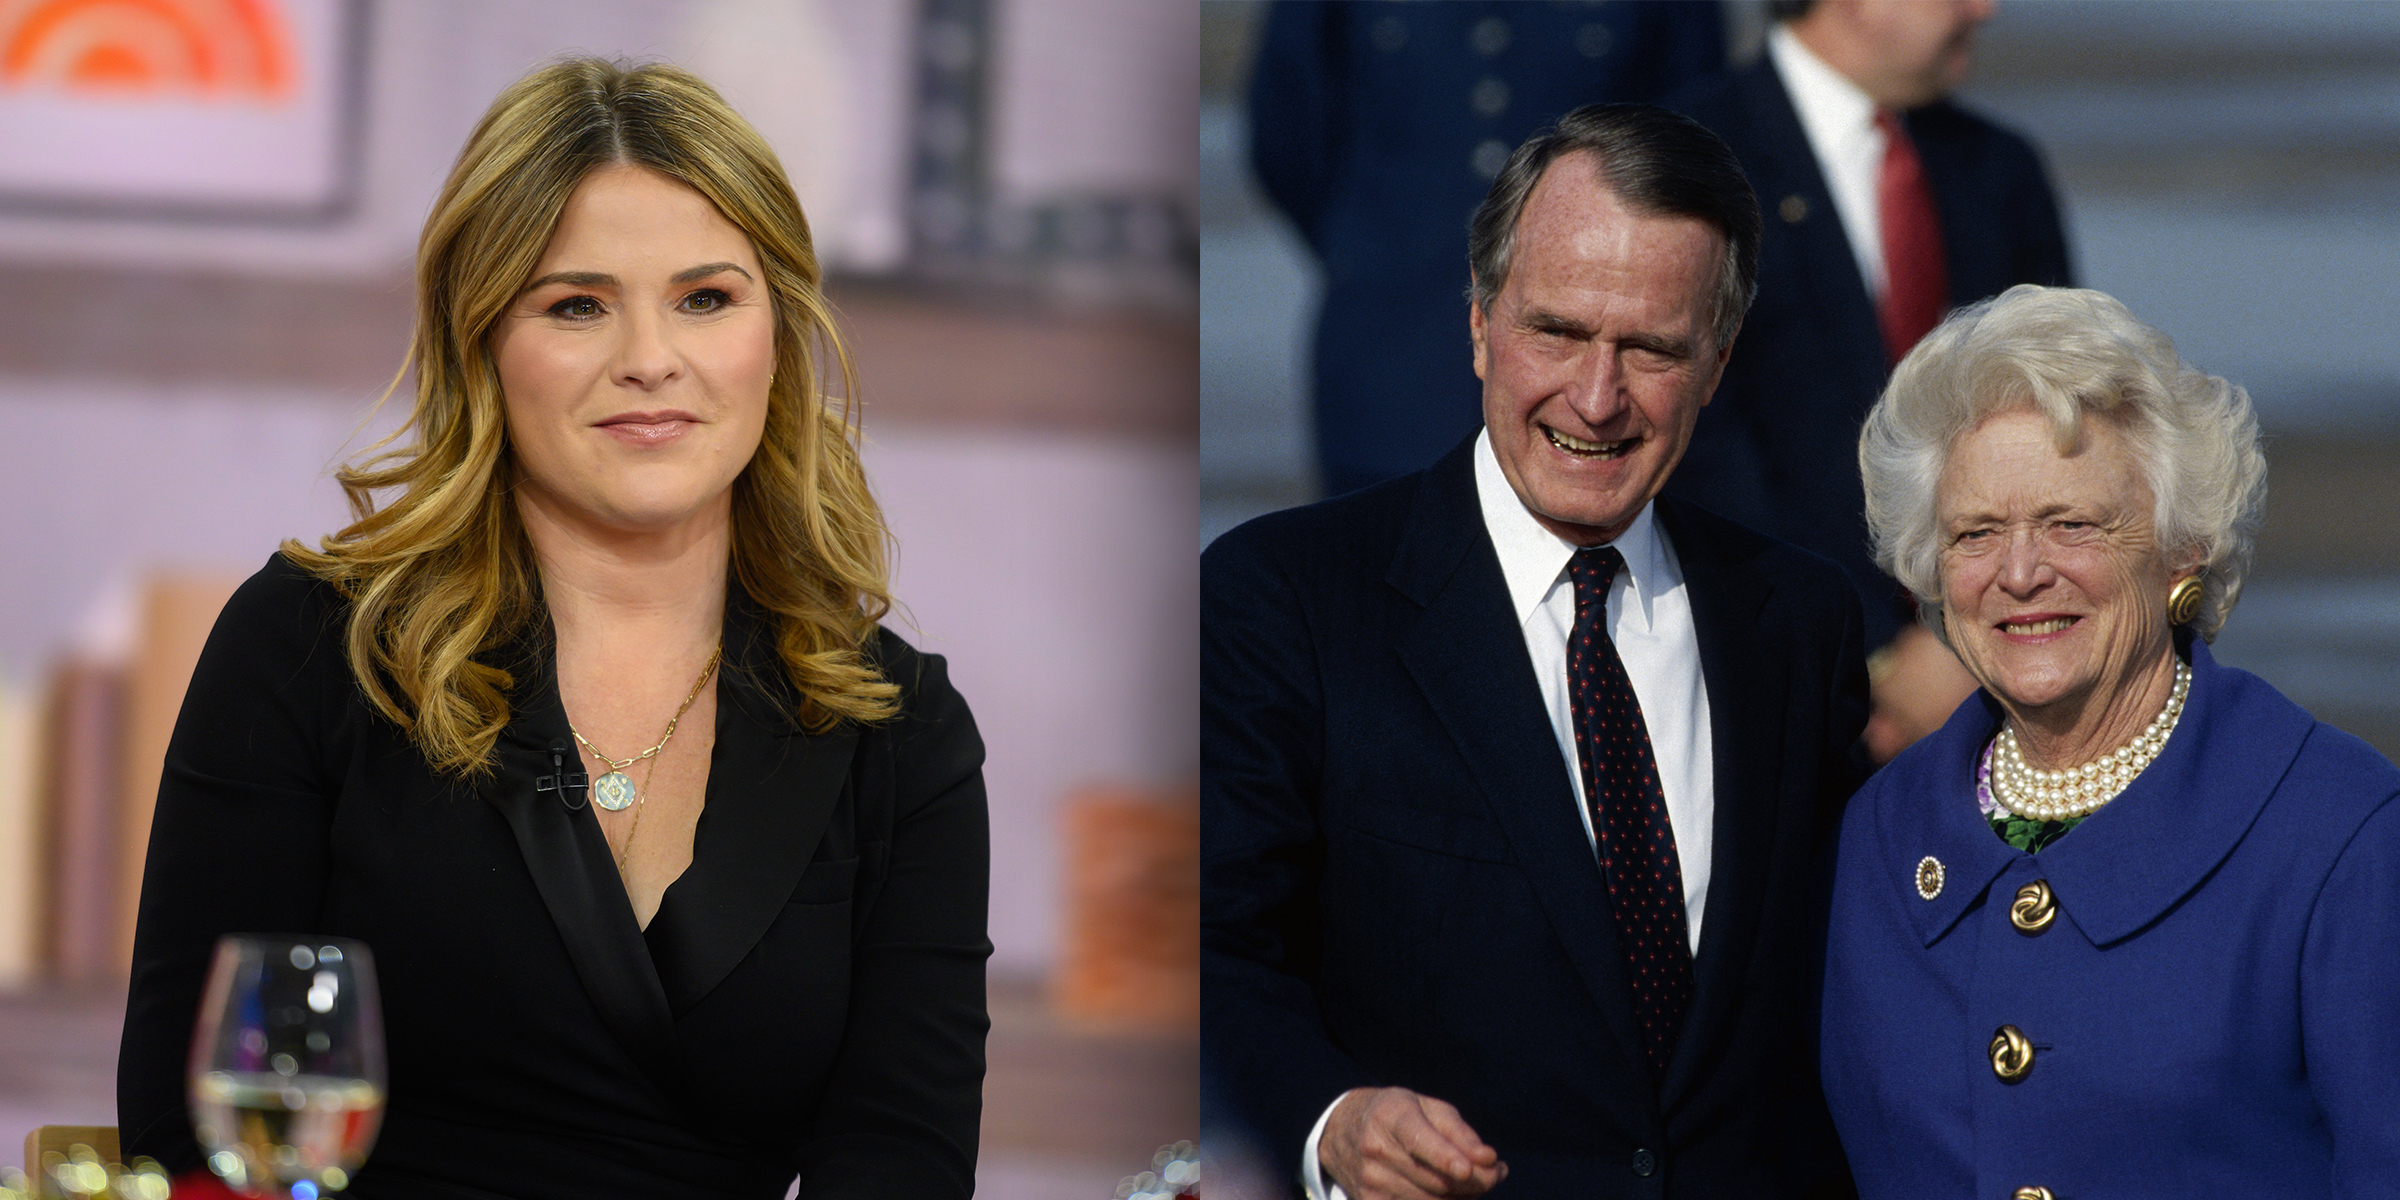 Jenna Bush Hager's new book shares wisdom from George H.W. and Barbara Bush